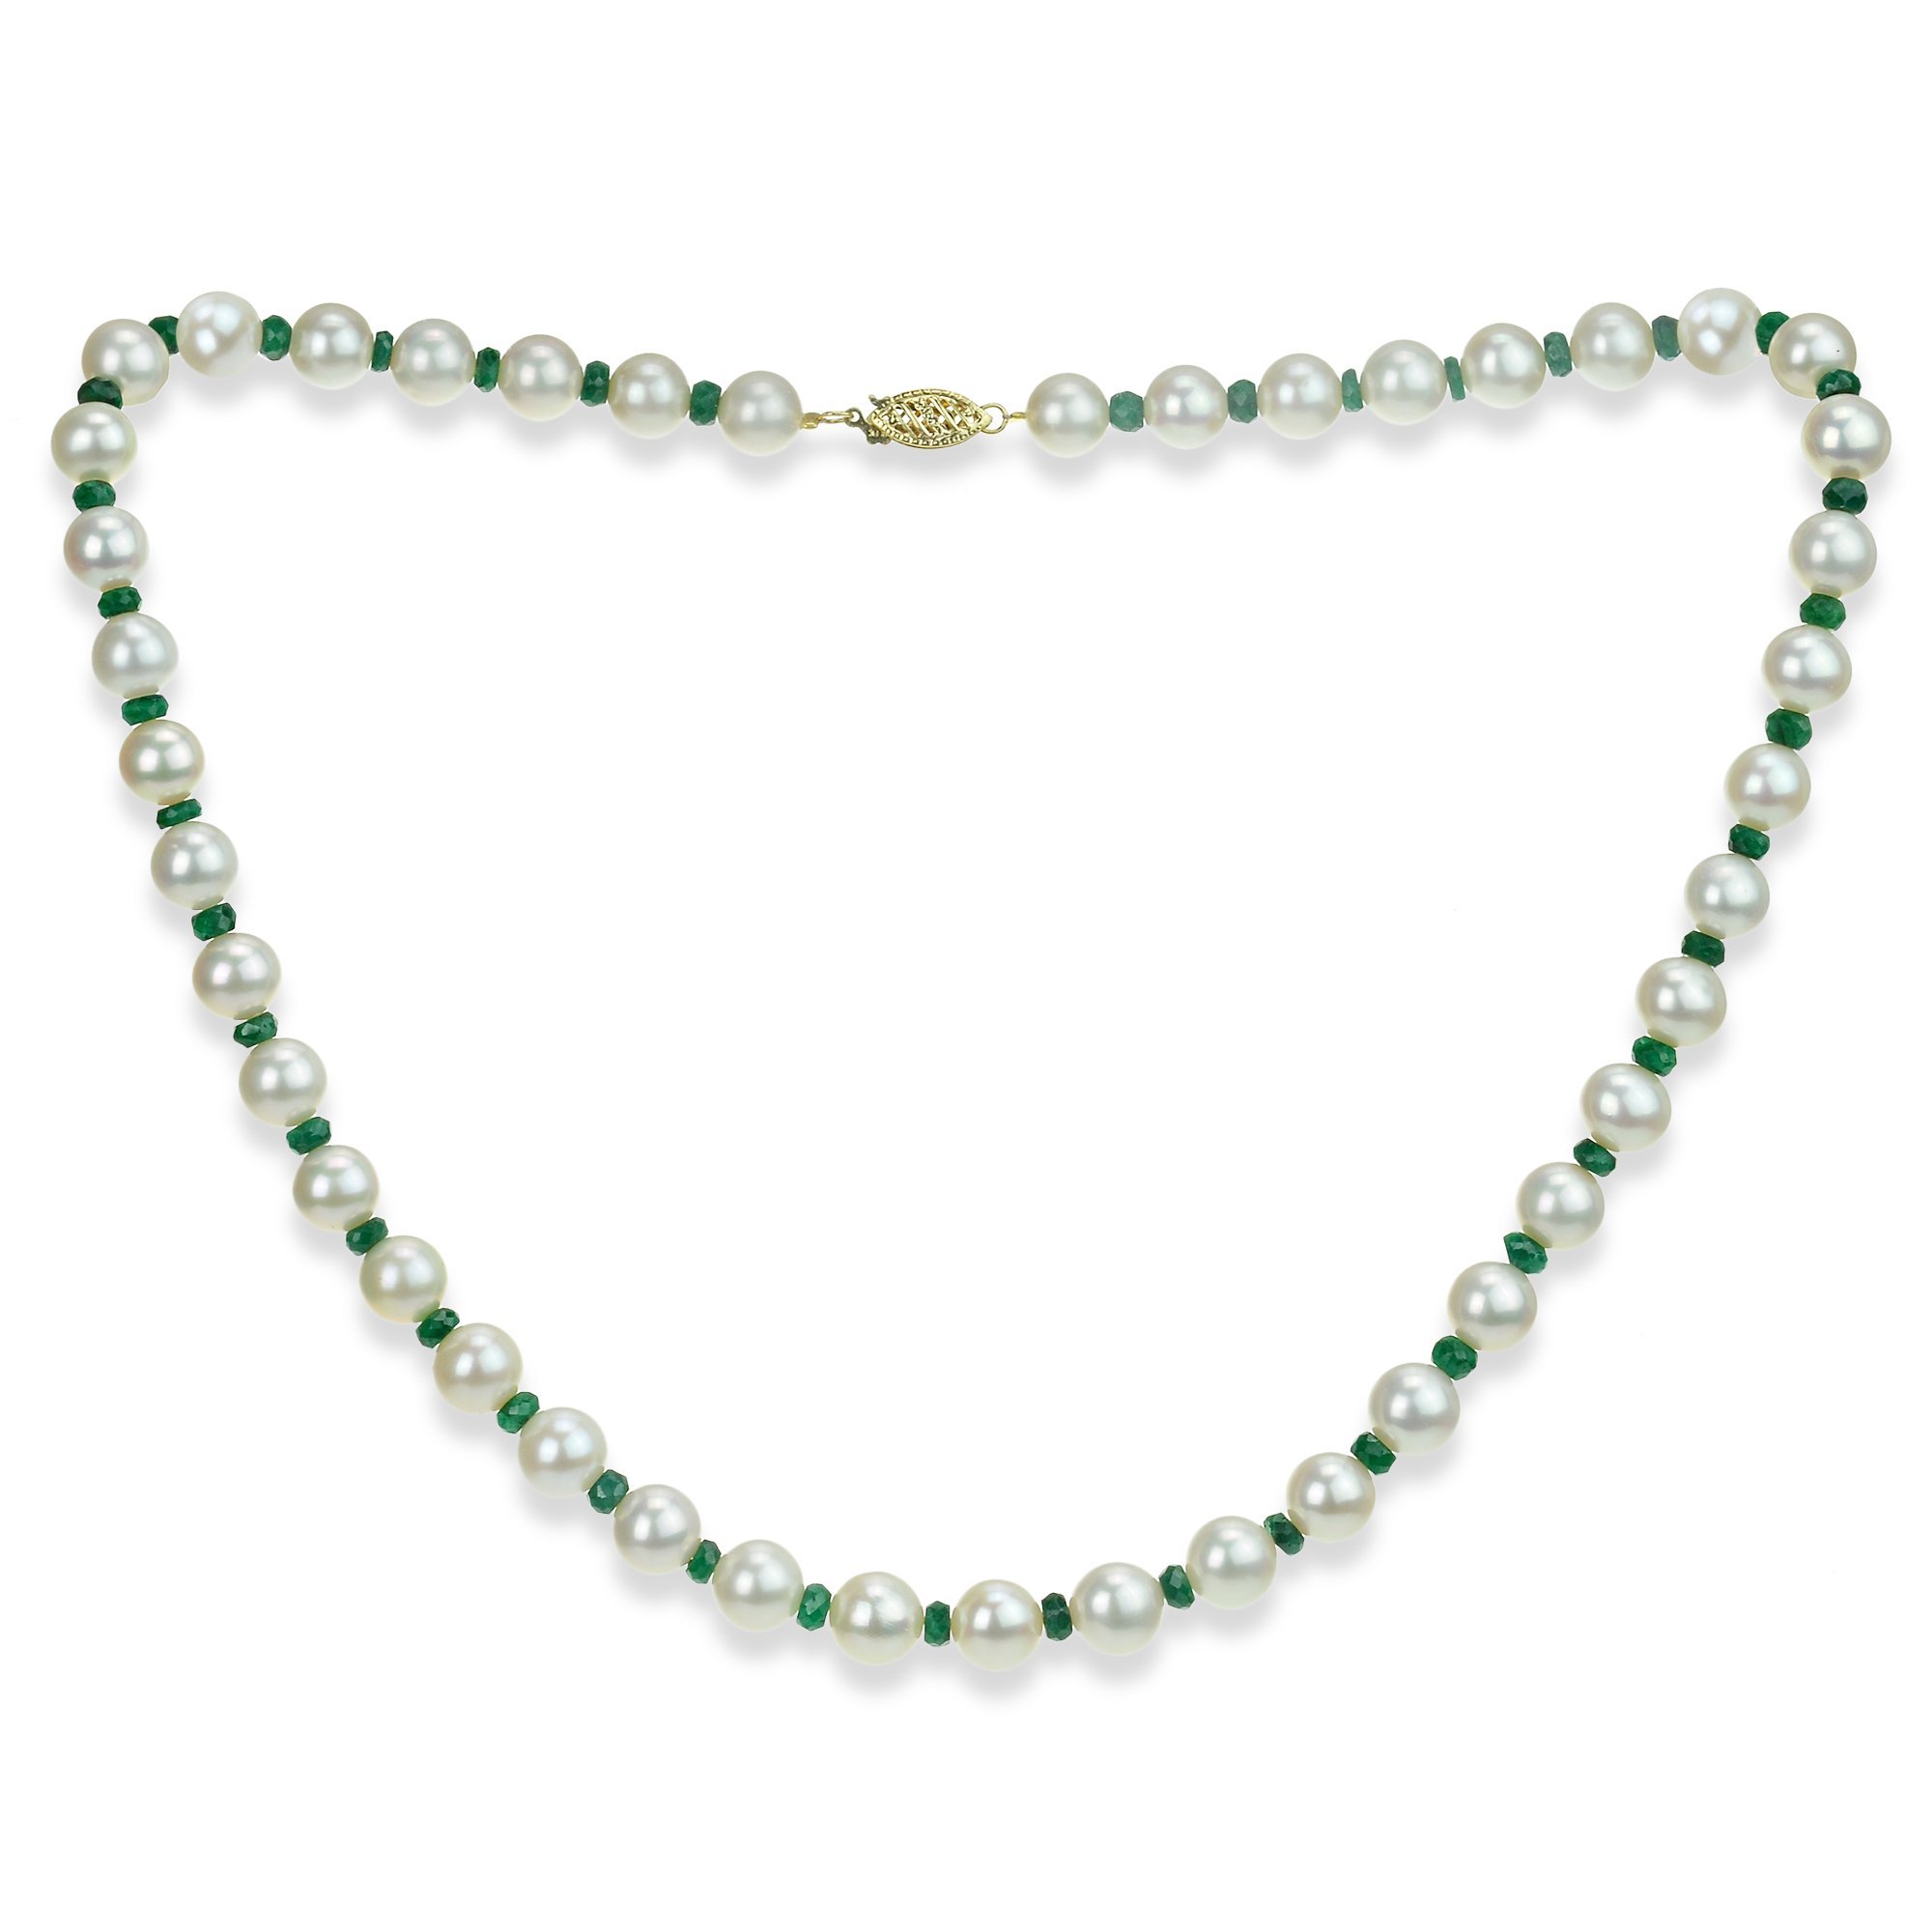 Emerald Green Gemstone Necklace Freshwater Cultured White Pearl Necklace 14K Yellow Gold Wedding Jewelry by La Regis Jewelry